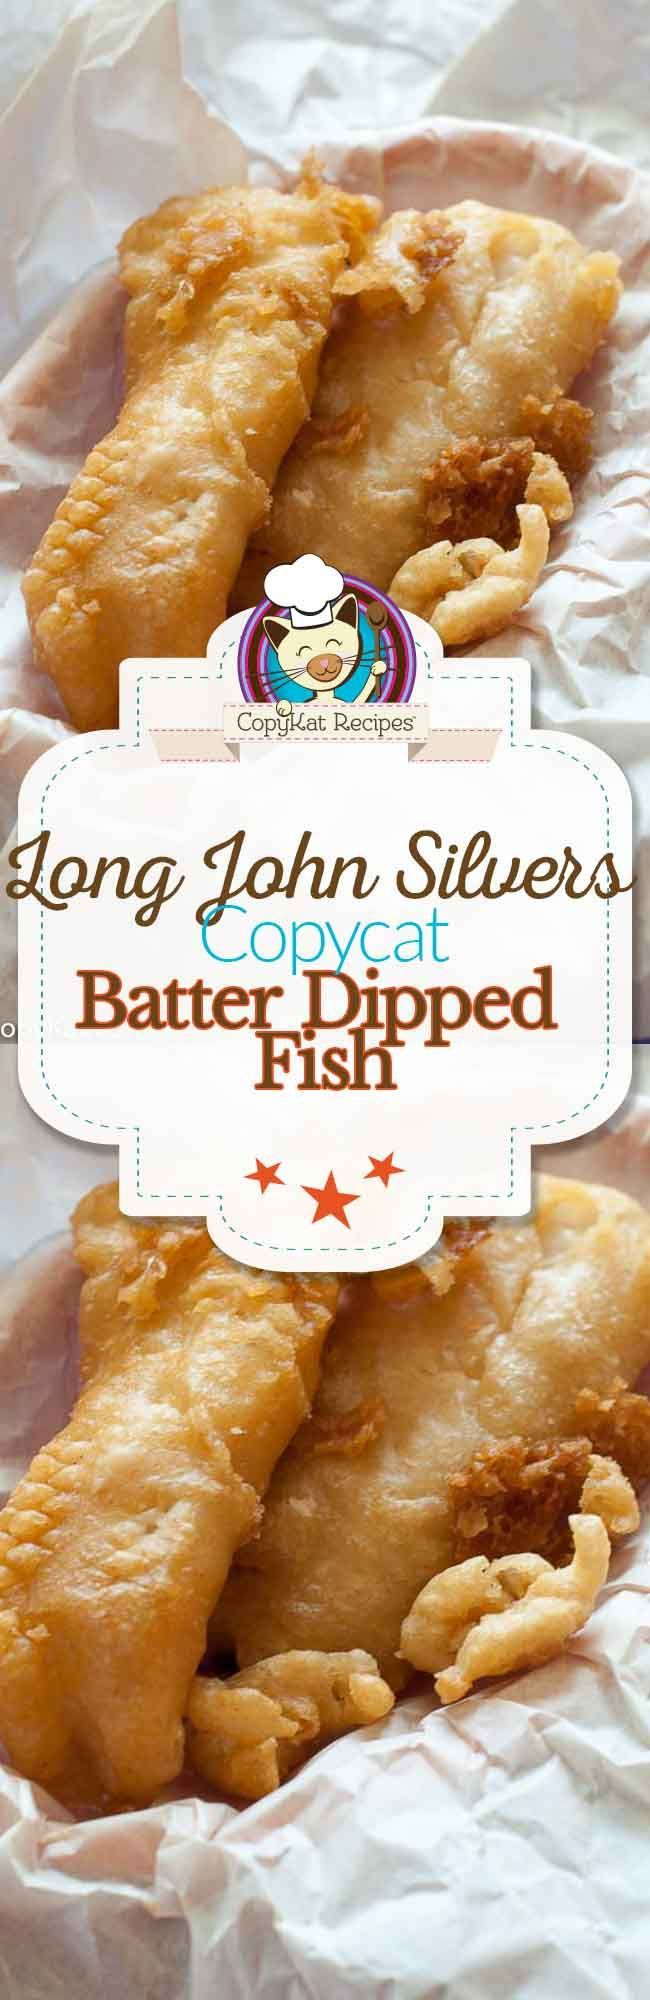 17 best ideas about beer batter recipe on pinterest deep for How do you make batter for fish